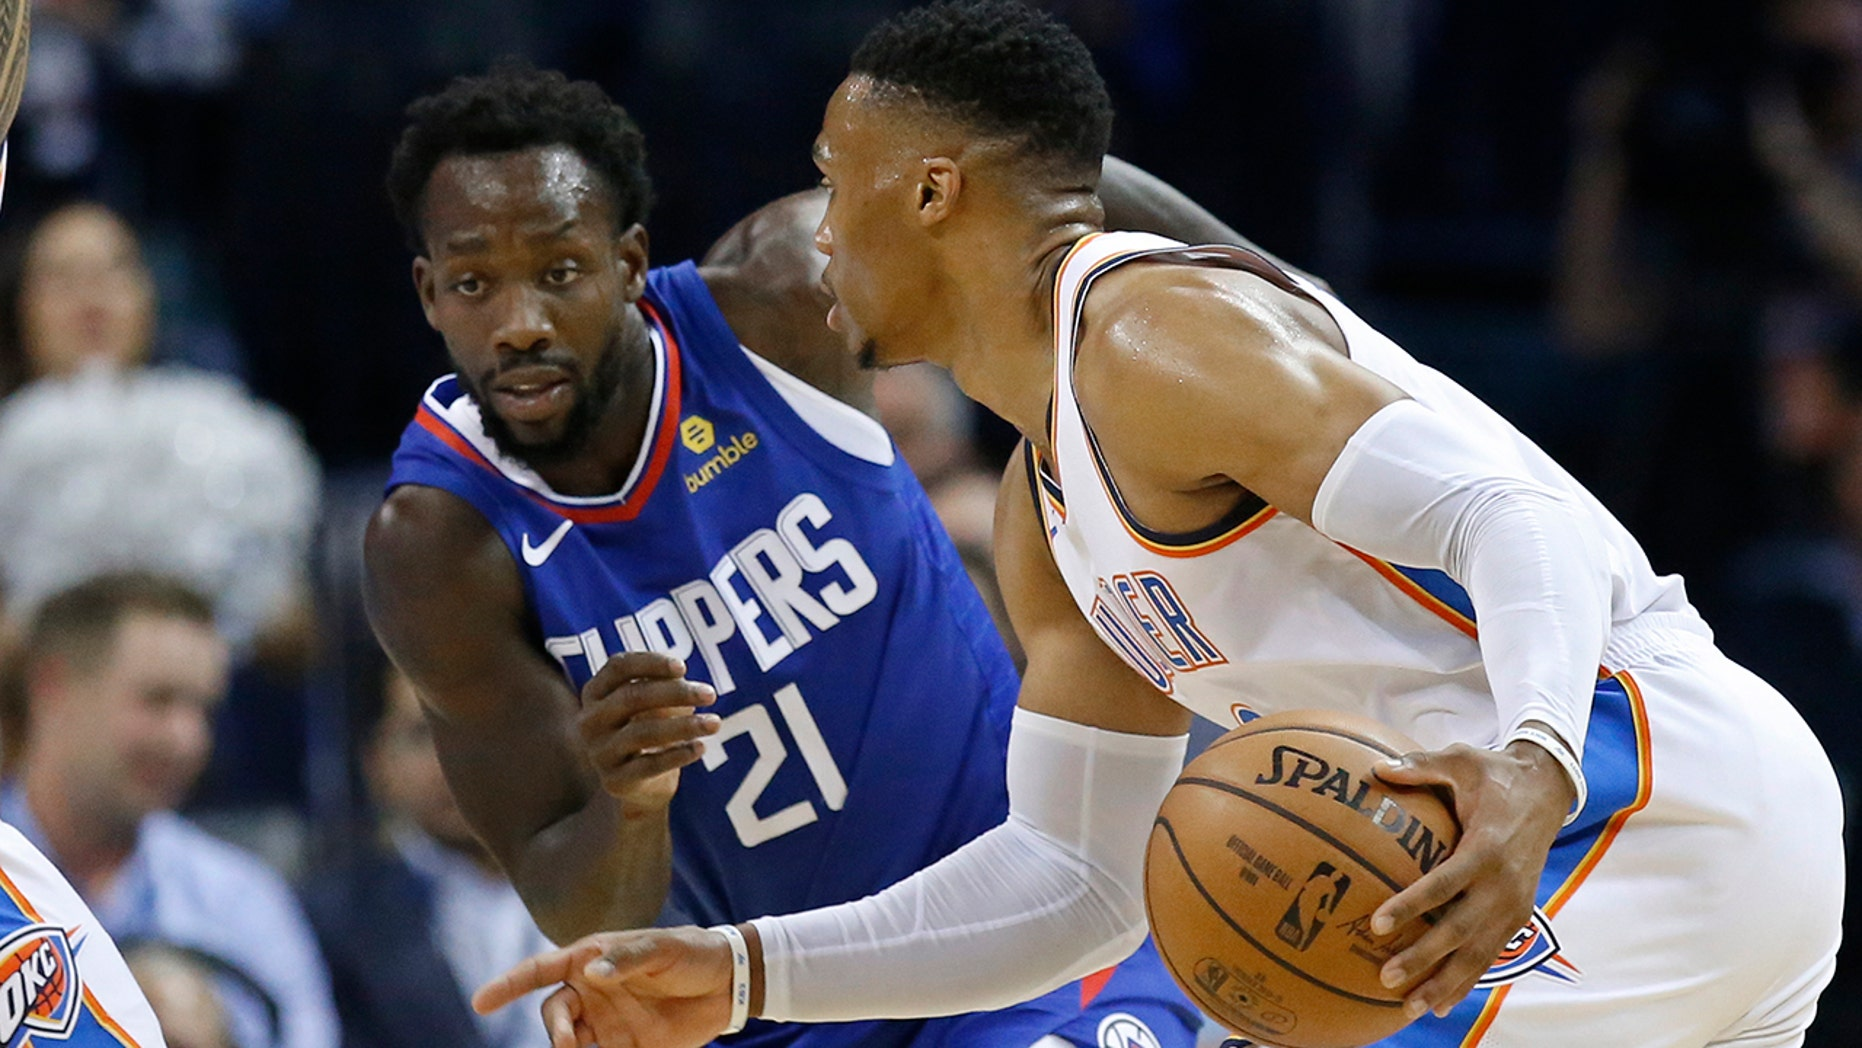 Oklahoma City Thunder guard Russell Westbrook, right, drives around Los Angeles Clippers guard Patrick Beverley (21) in the first half of an NBA basketball game in Oklahoma City, Tuesday, Oct. 30, 2018.